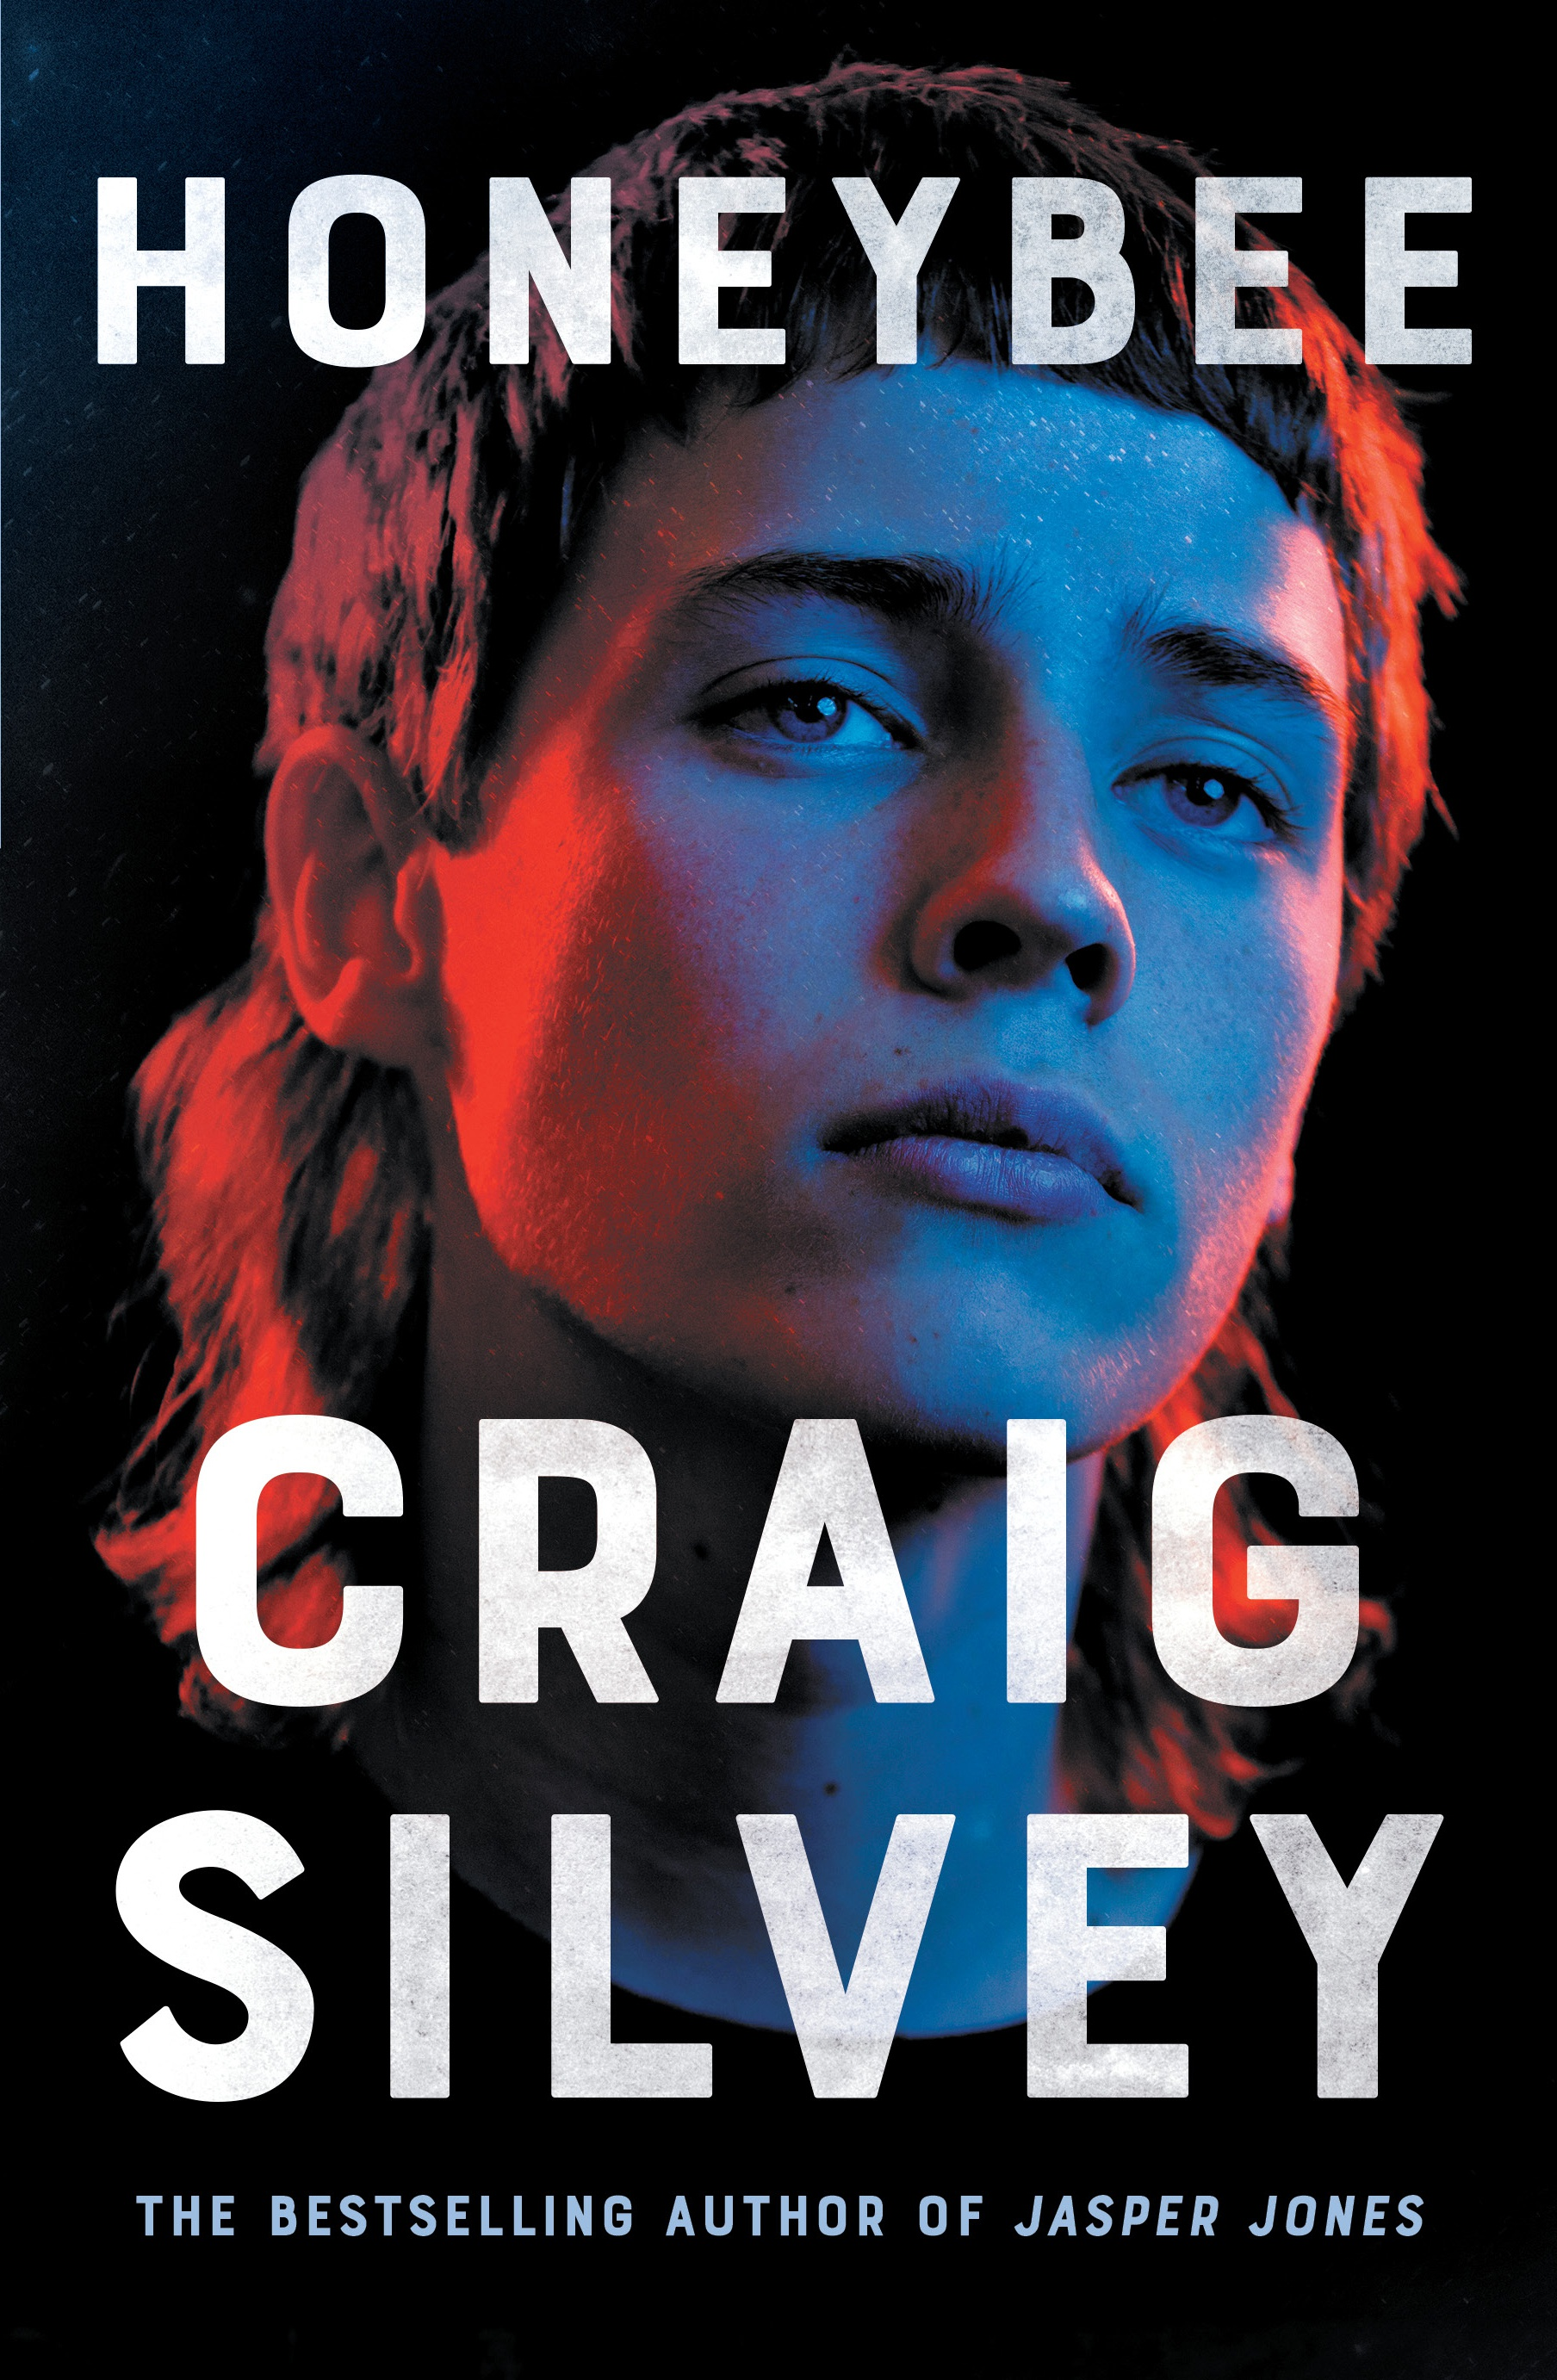 Cover of Honeybee by Craig Silvey, showing a young person's face lit up in blue and red